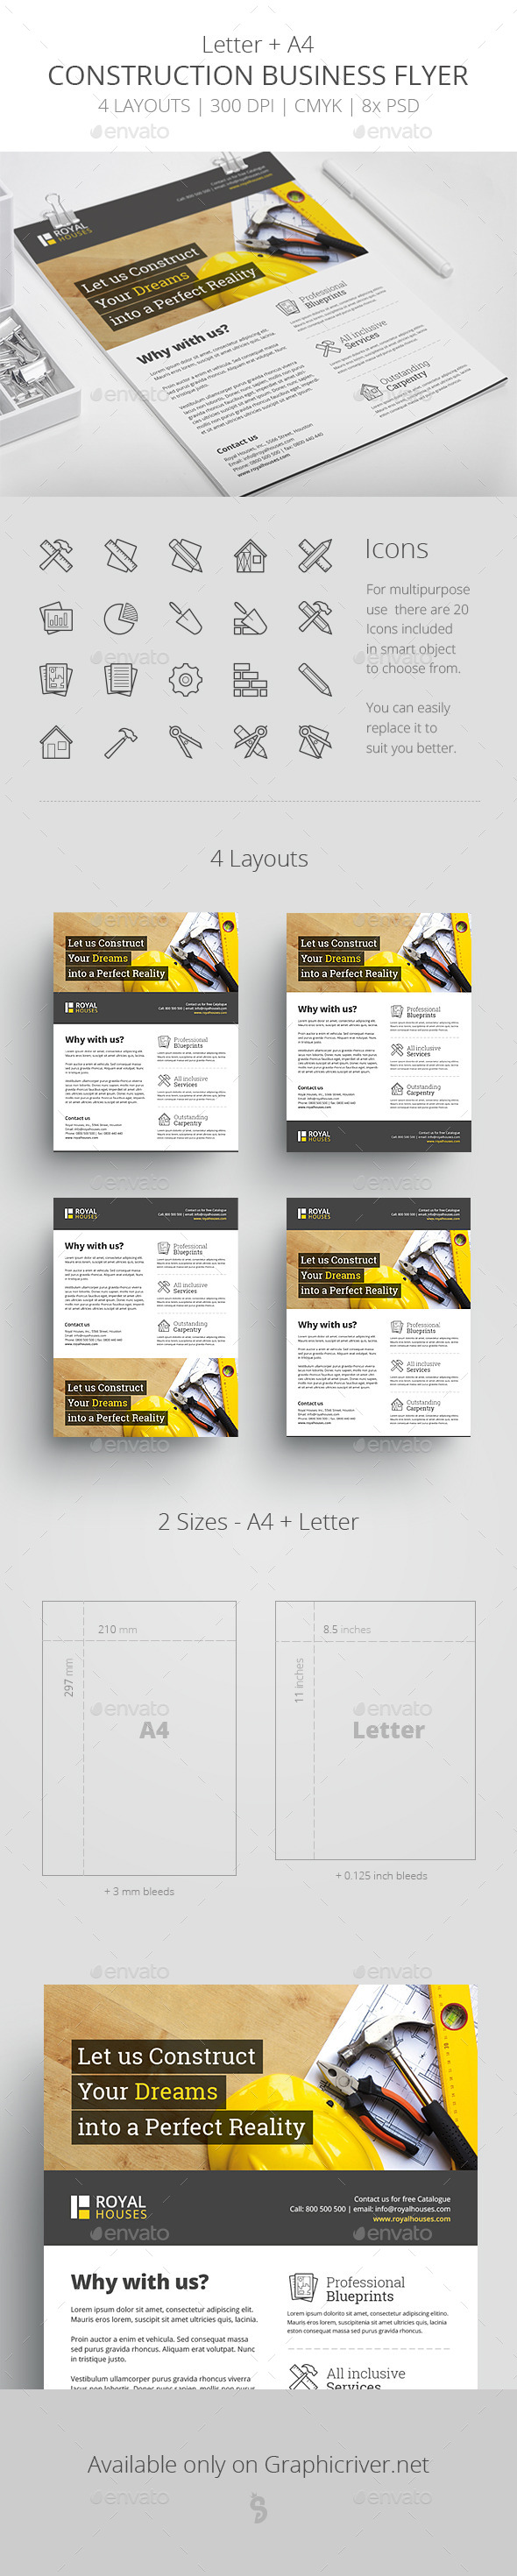 Construction Business Flyer - Letter + A4 - Corporate Flyers